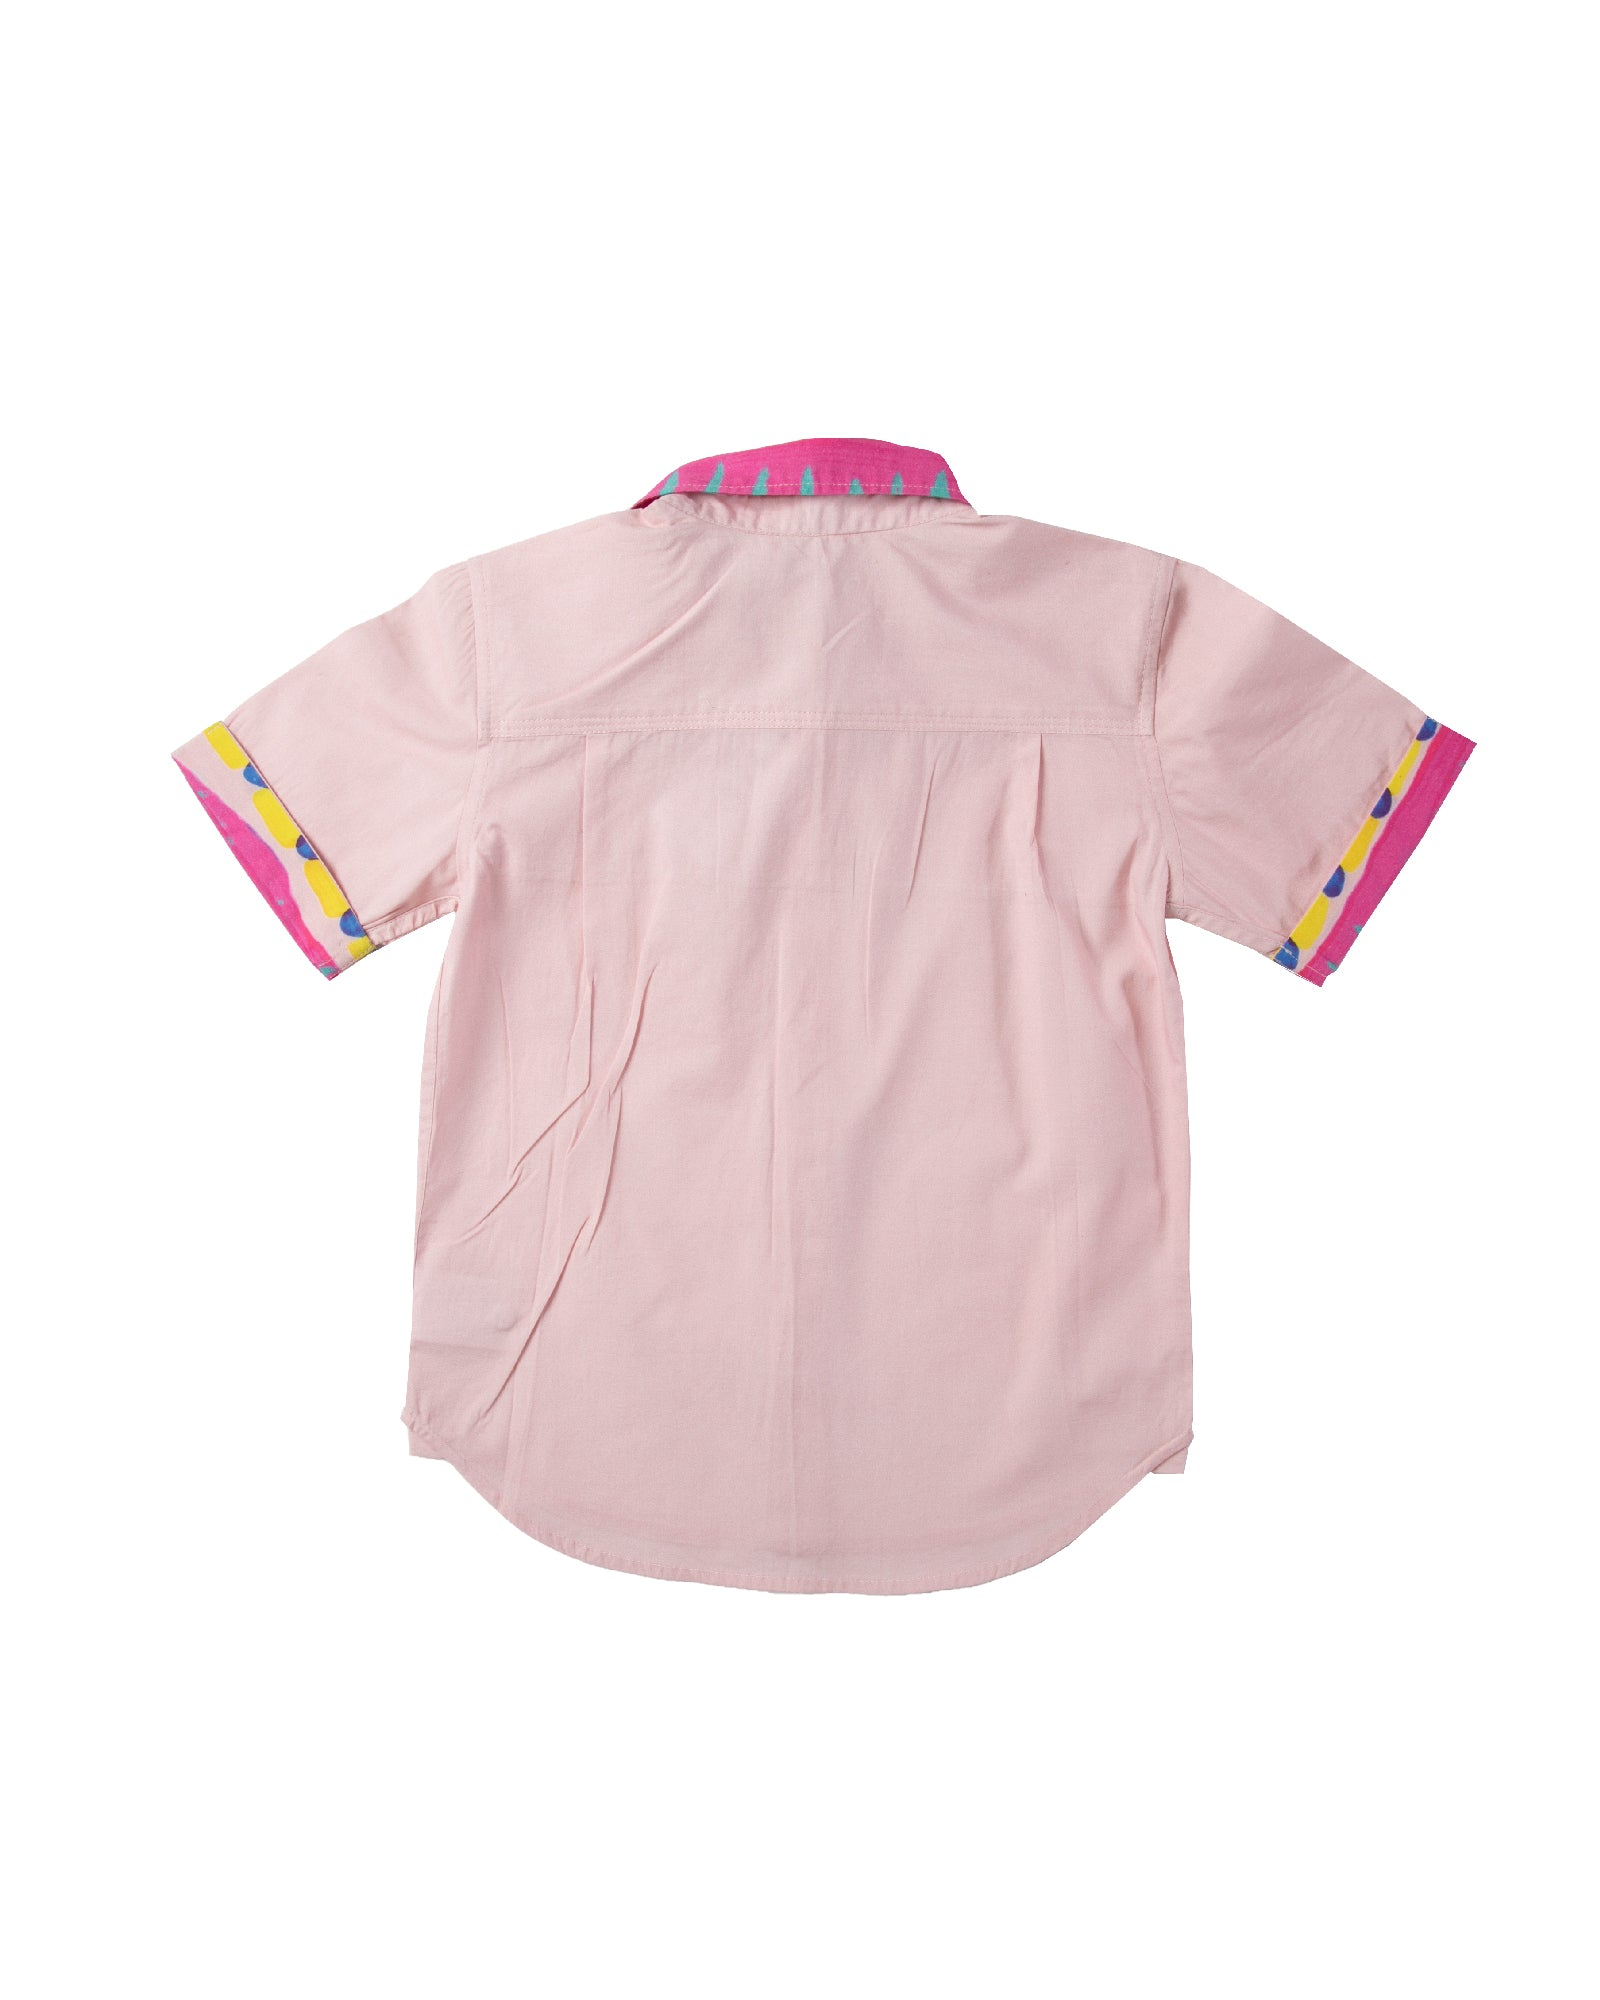 The Boys Electric Pink Party Shirt by Bonita Bambino - BACK